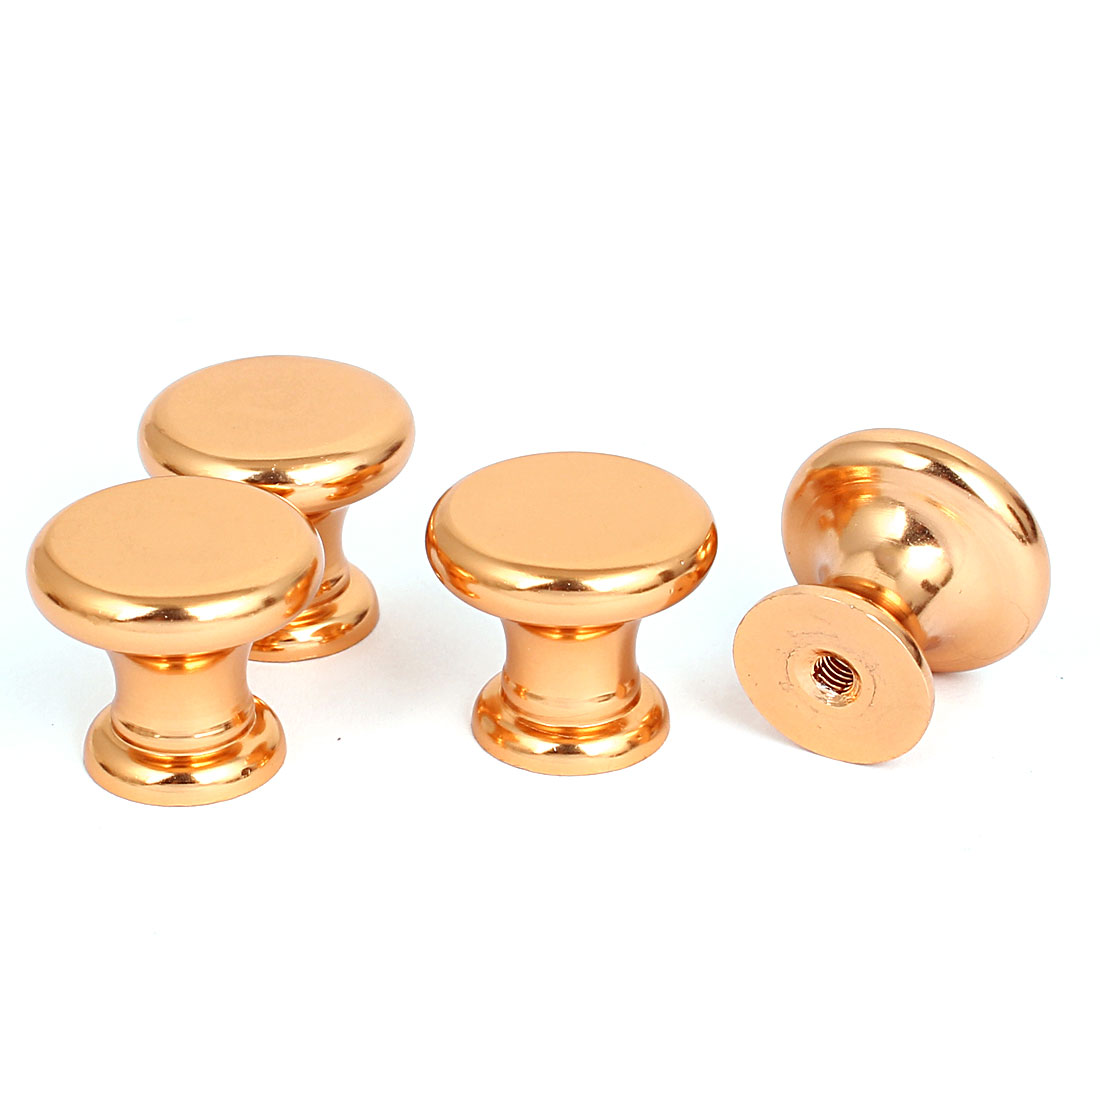 25mm Diameter Metal Ball Shape Drawer Pull Handle Knob Gold Tone 4pcs for Home Office